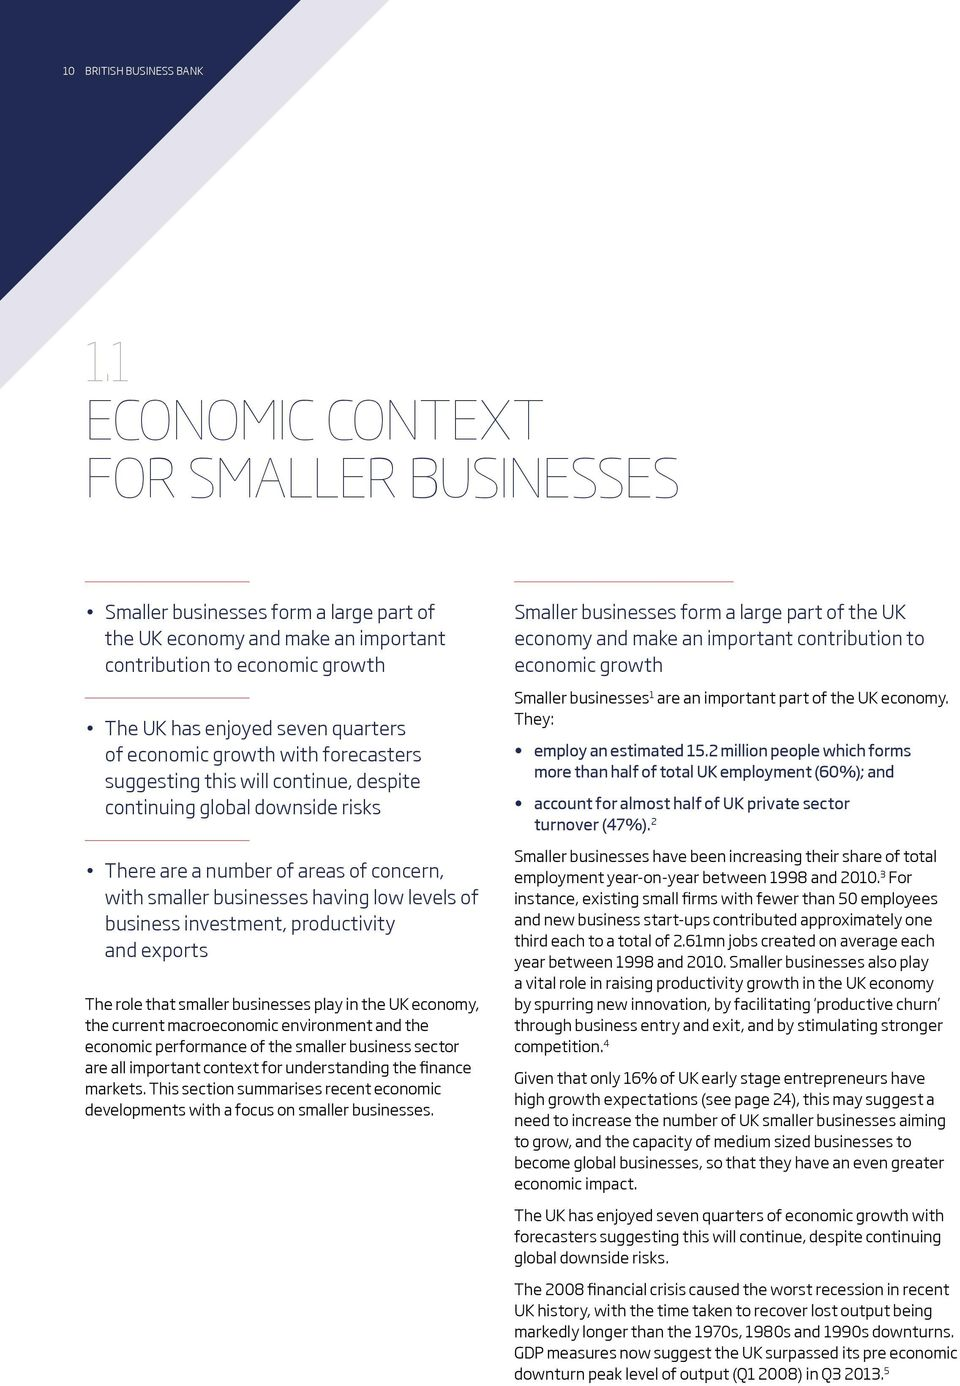 growth with forecasters suggesting this will continue, despite continuing global downside risks There are a number of areas of concern, with smaller businesses having low levels of business